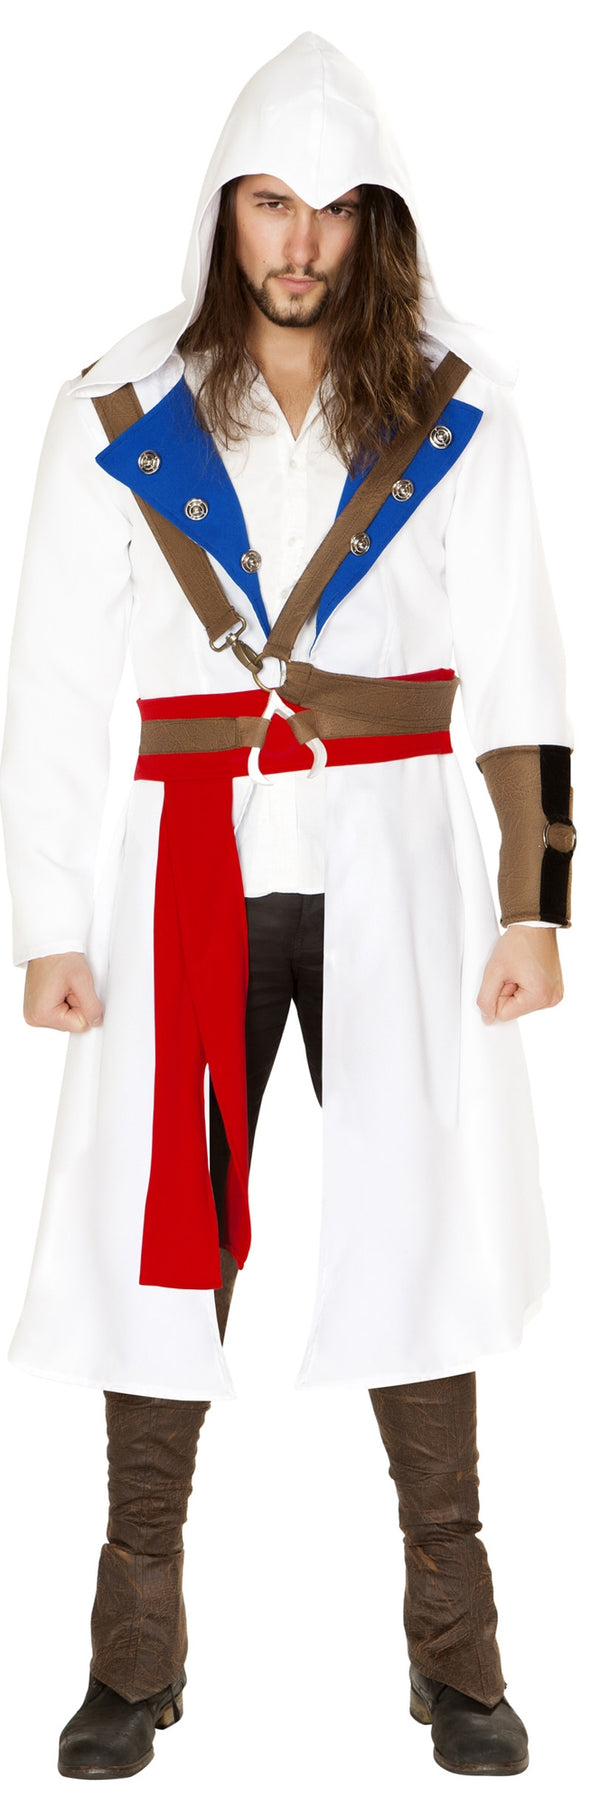 RM-4844 The Assassins Warrior Costume front